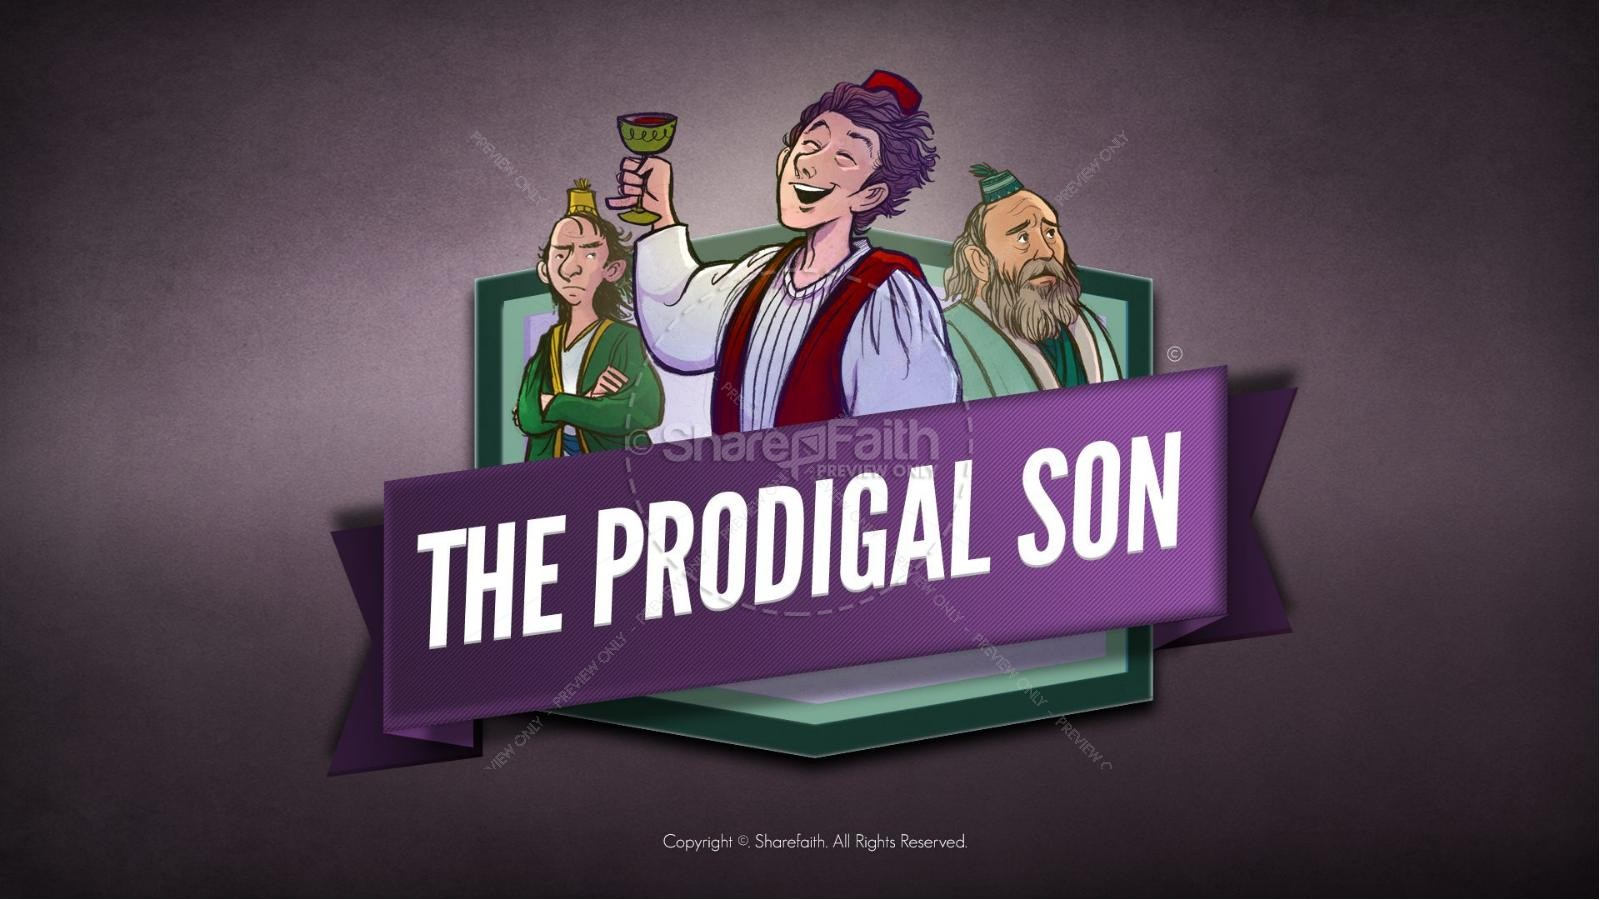 Prodigal son coloring pages for kids - Prodigal Son Coloring Page Pdf Lds The Kids Bible Story